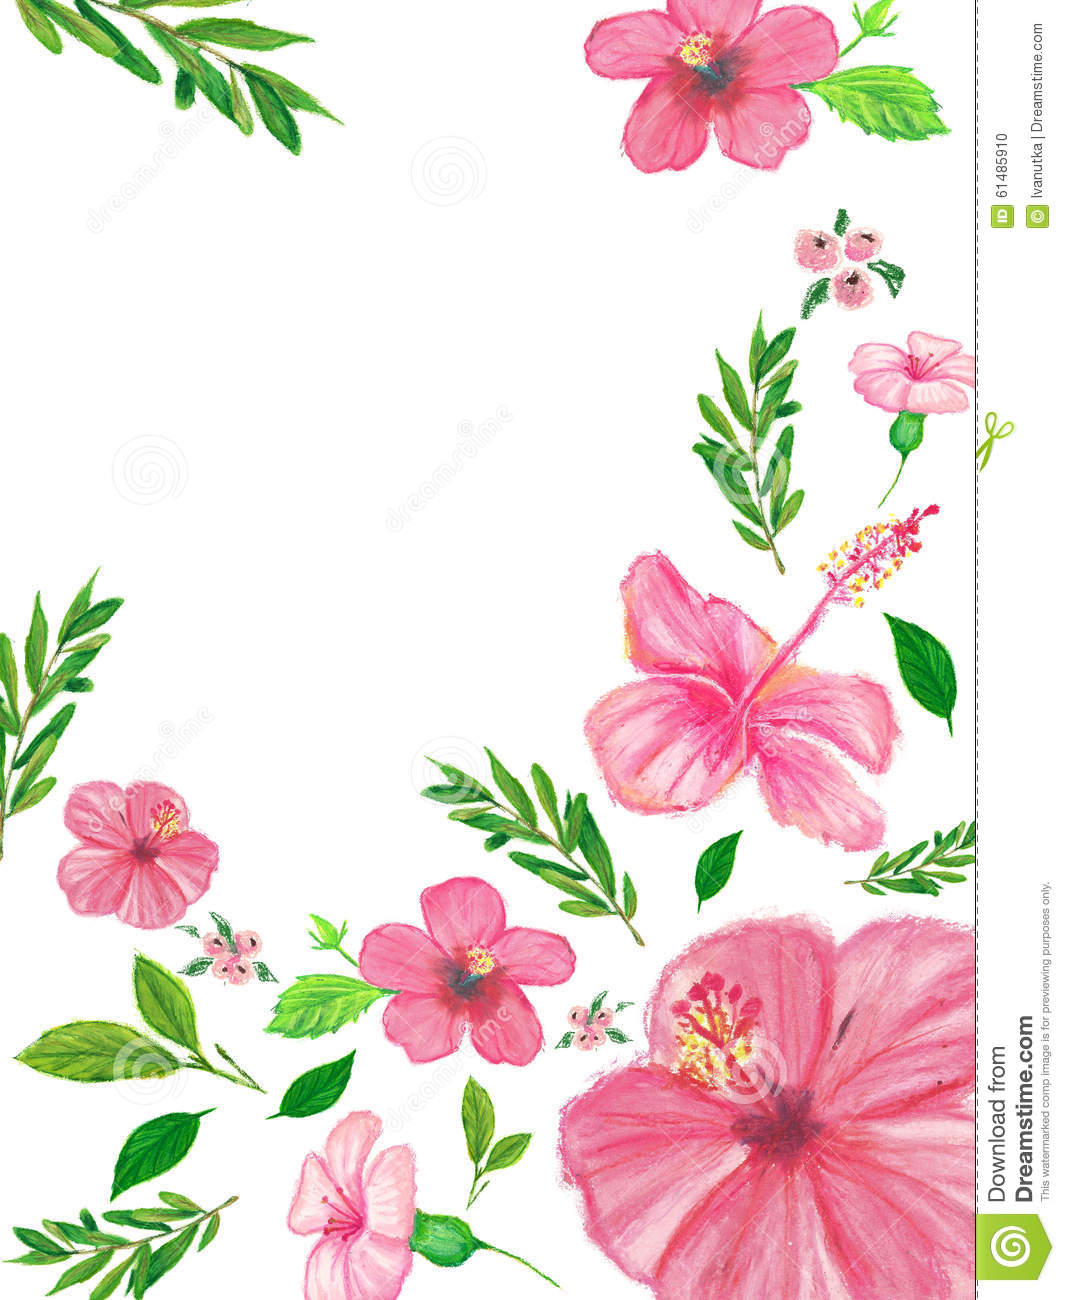 Background with green leaves and pink flowers hand painted with oil download background with green leaves and pink flowers hand painted with oil crayons stock illustration mightylinksfo